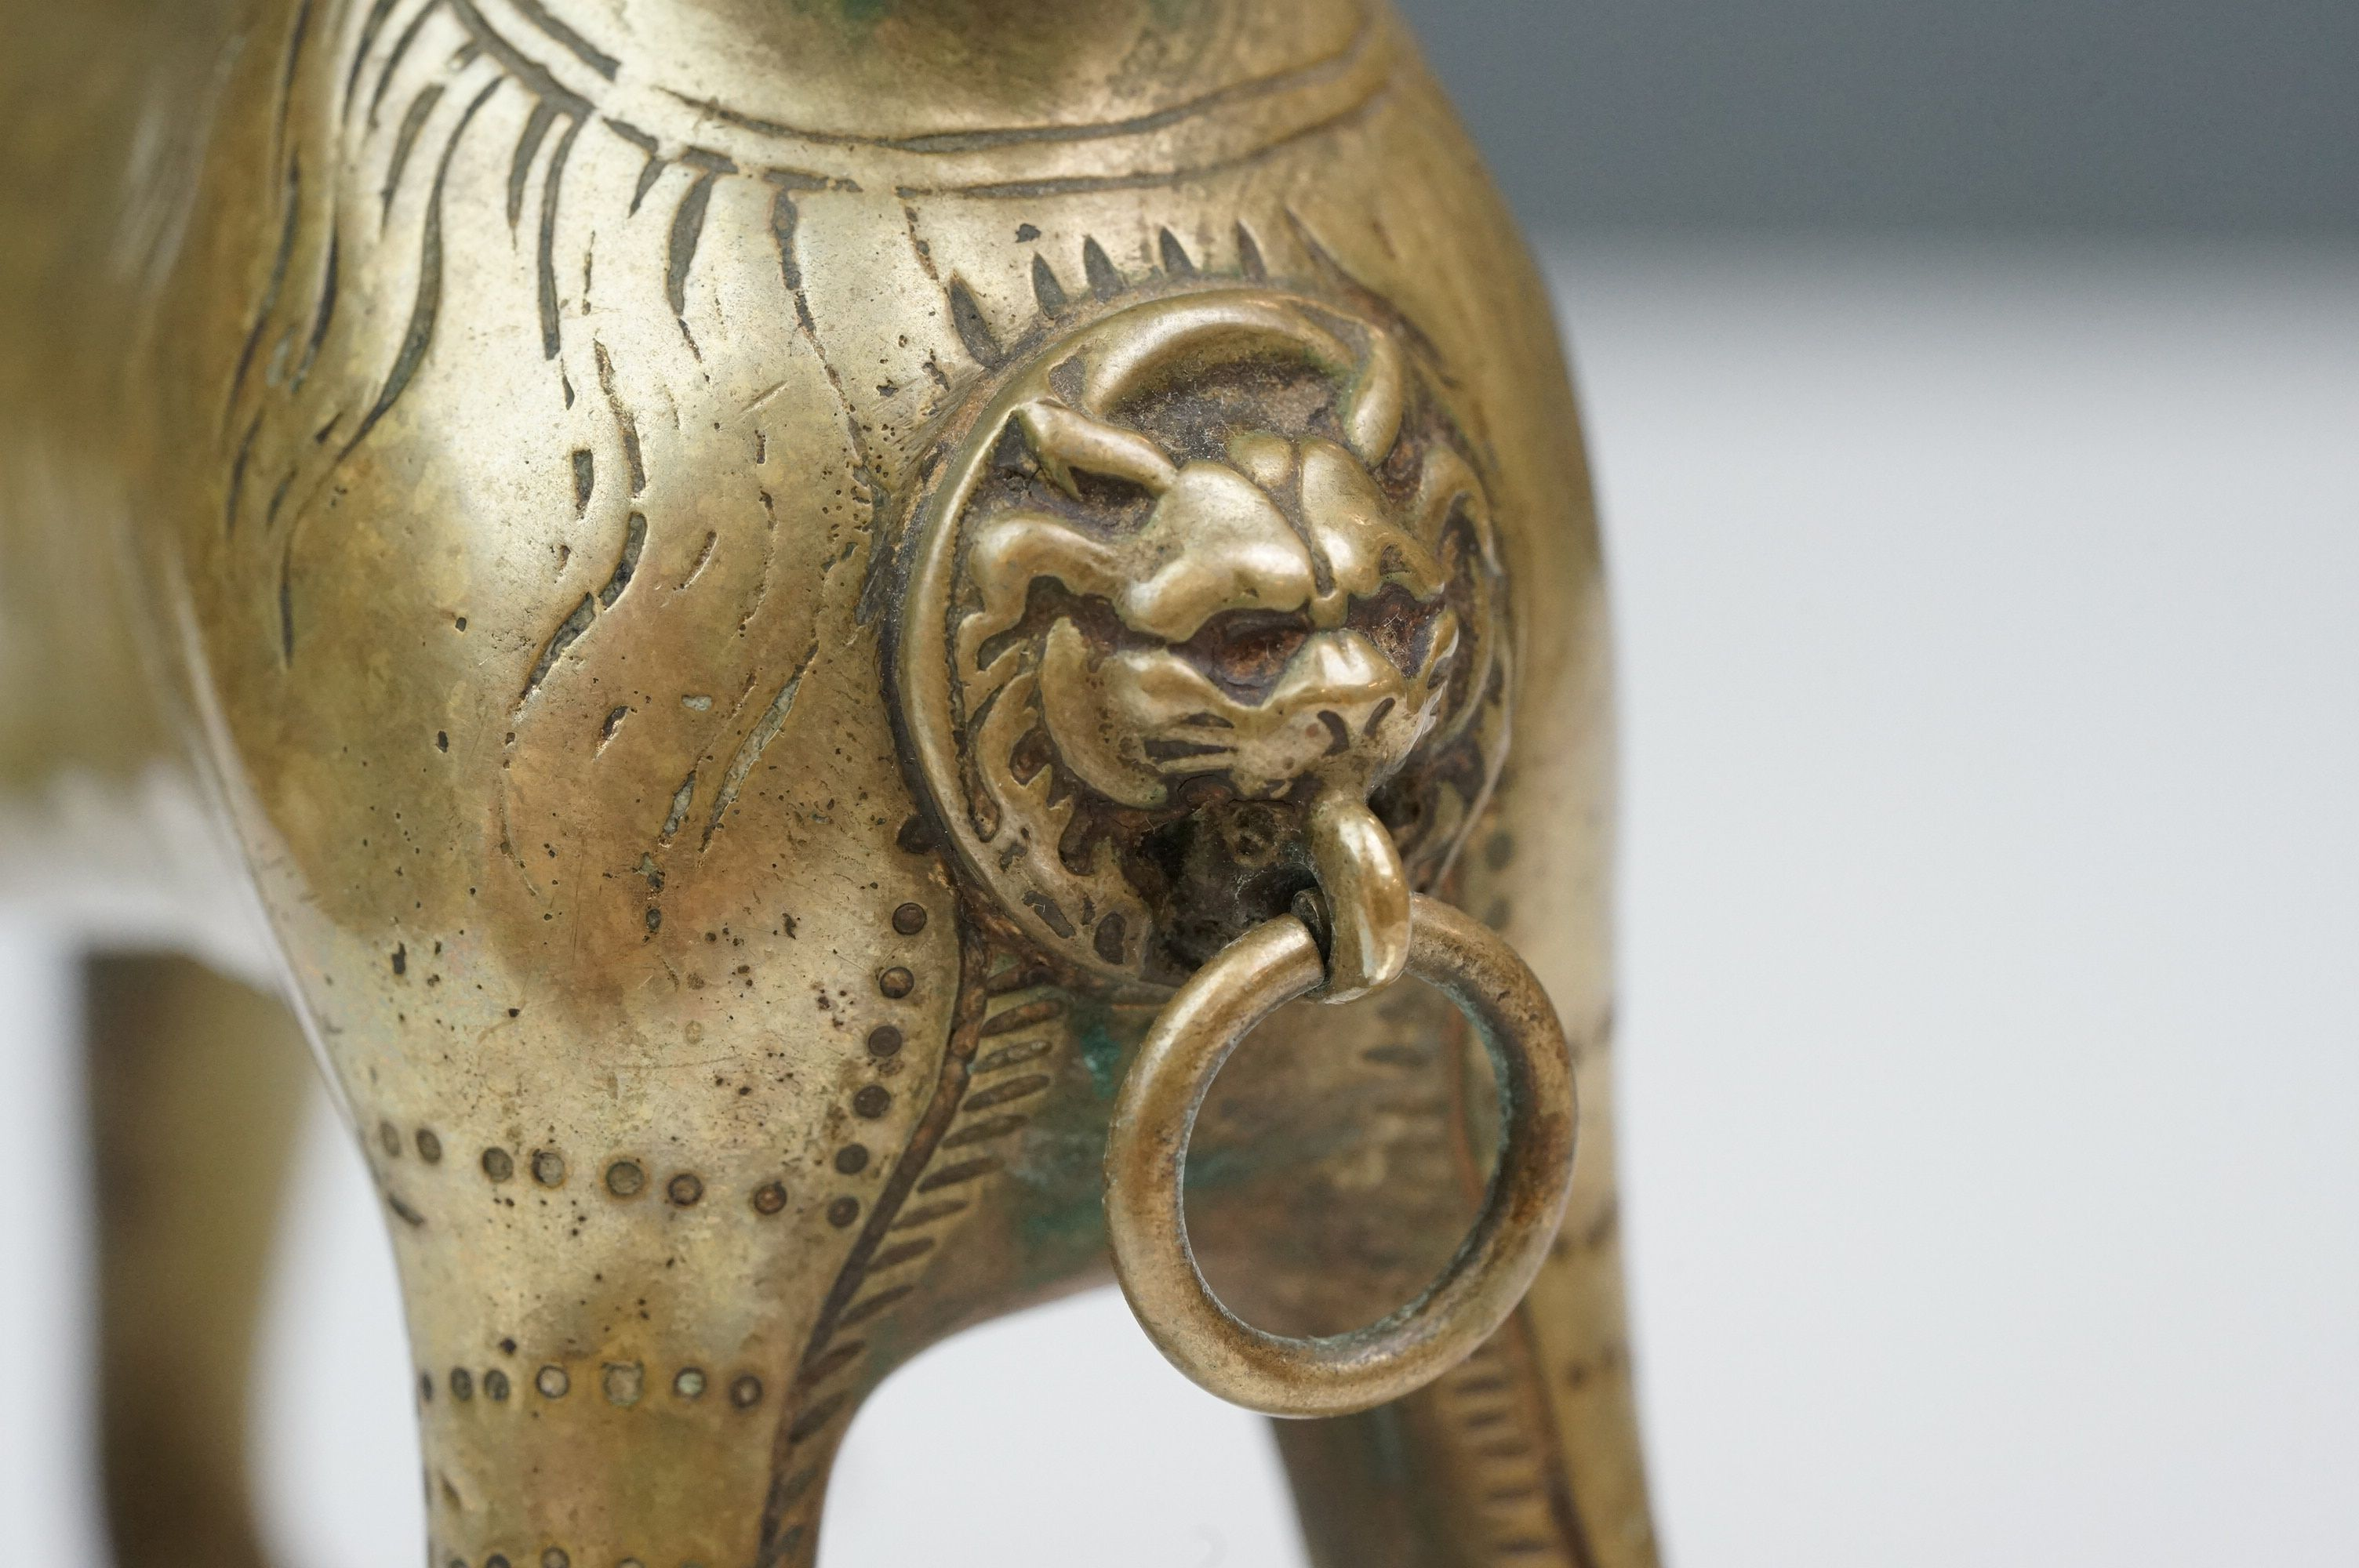 Antique brass table top cigar lighter in the form of a stylized dog - Image 9 of 9